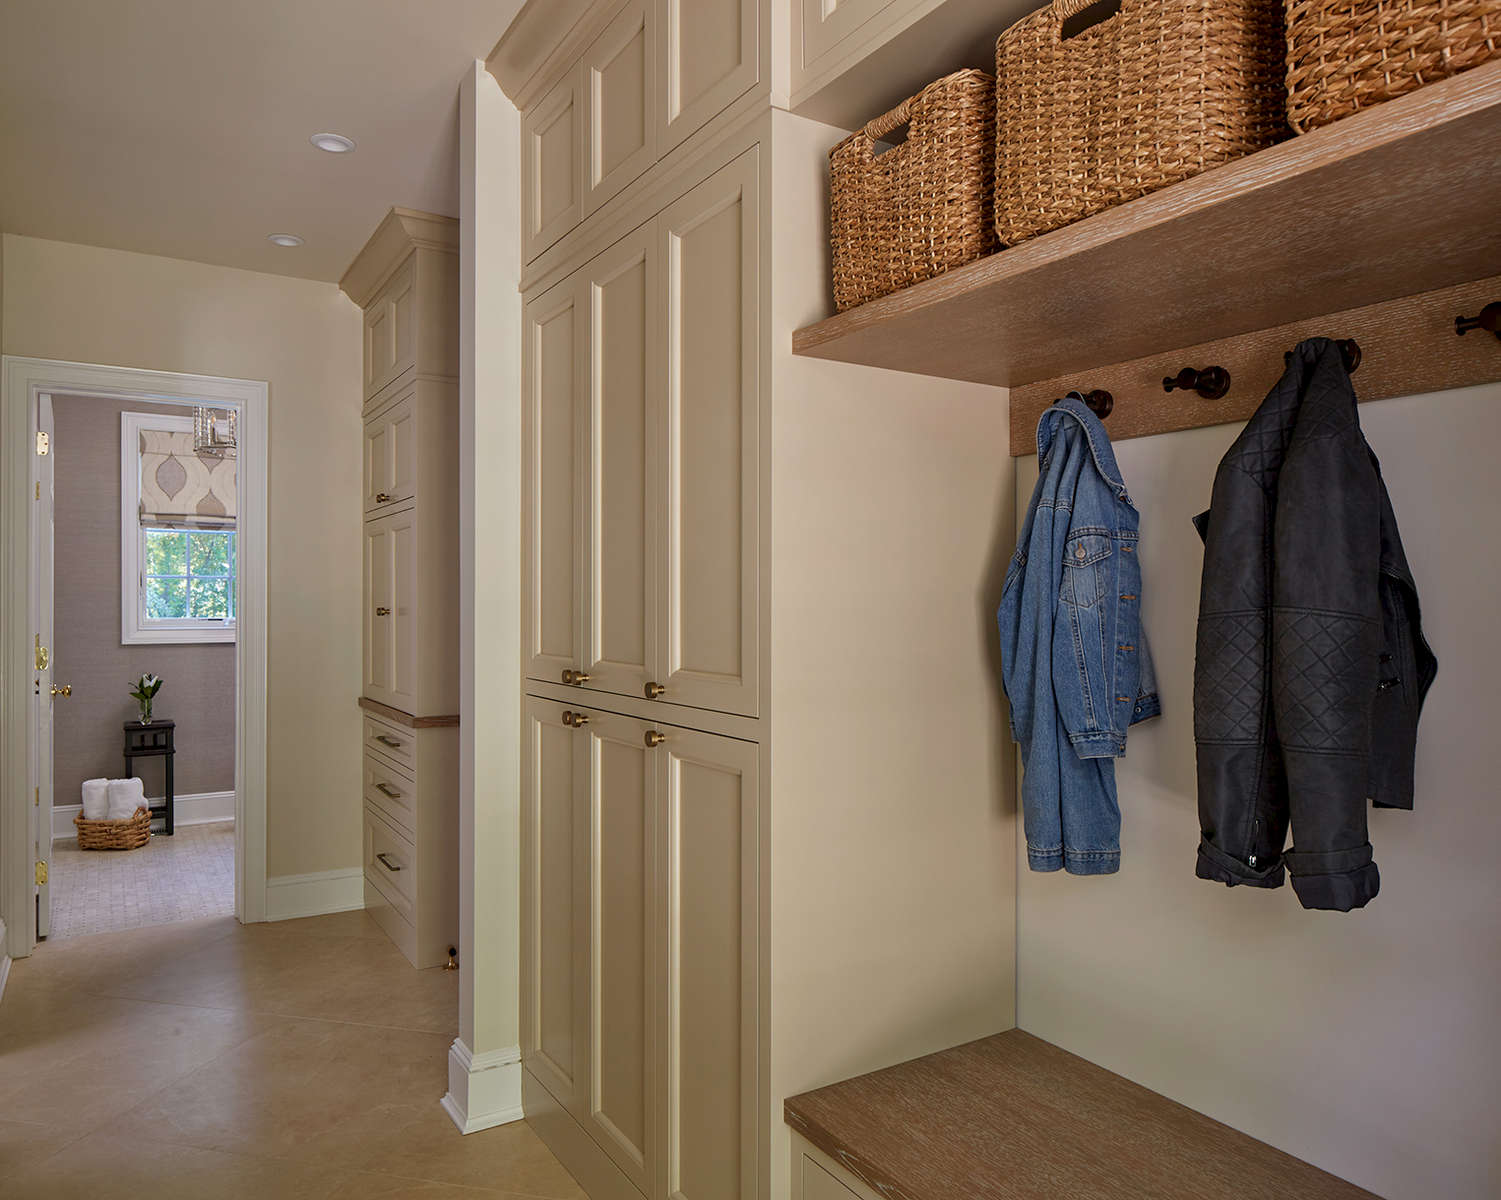 Mudroom Organization with Baskets & Hooks